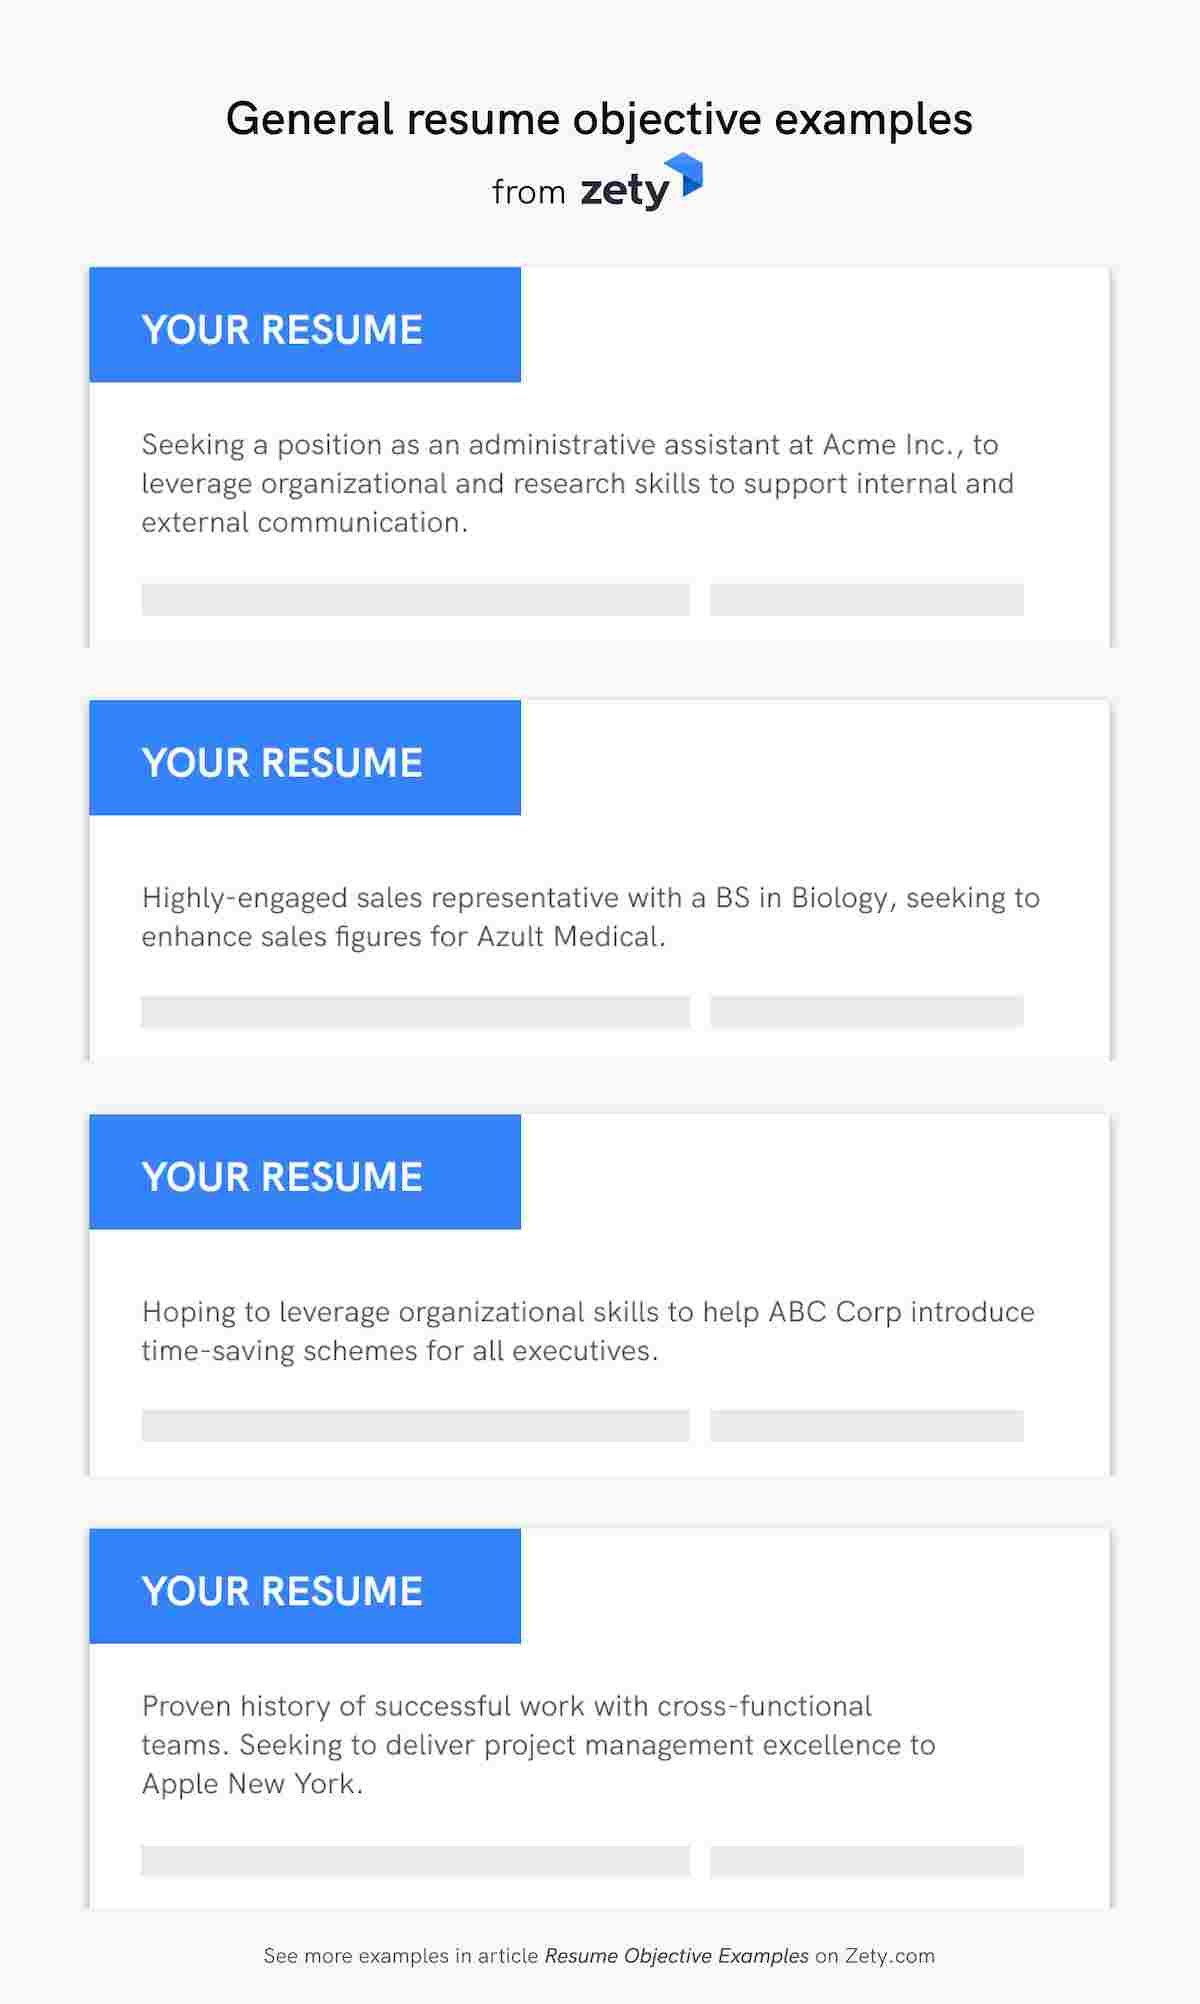 resume objective examples career objectives for all jobs medical general engineering Resume Medical Resume Objective Examples